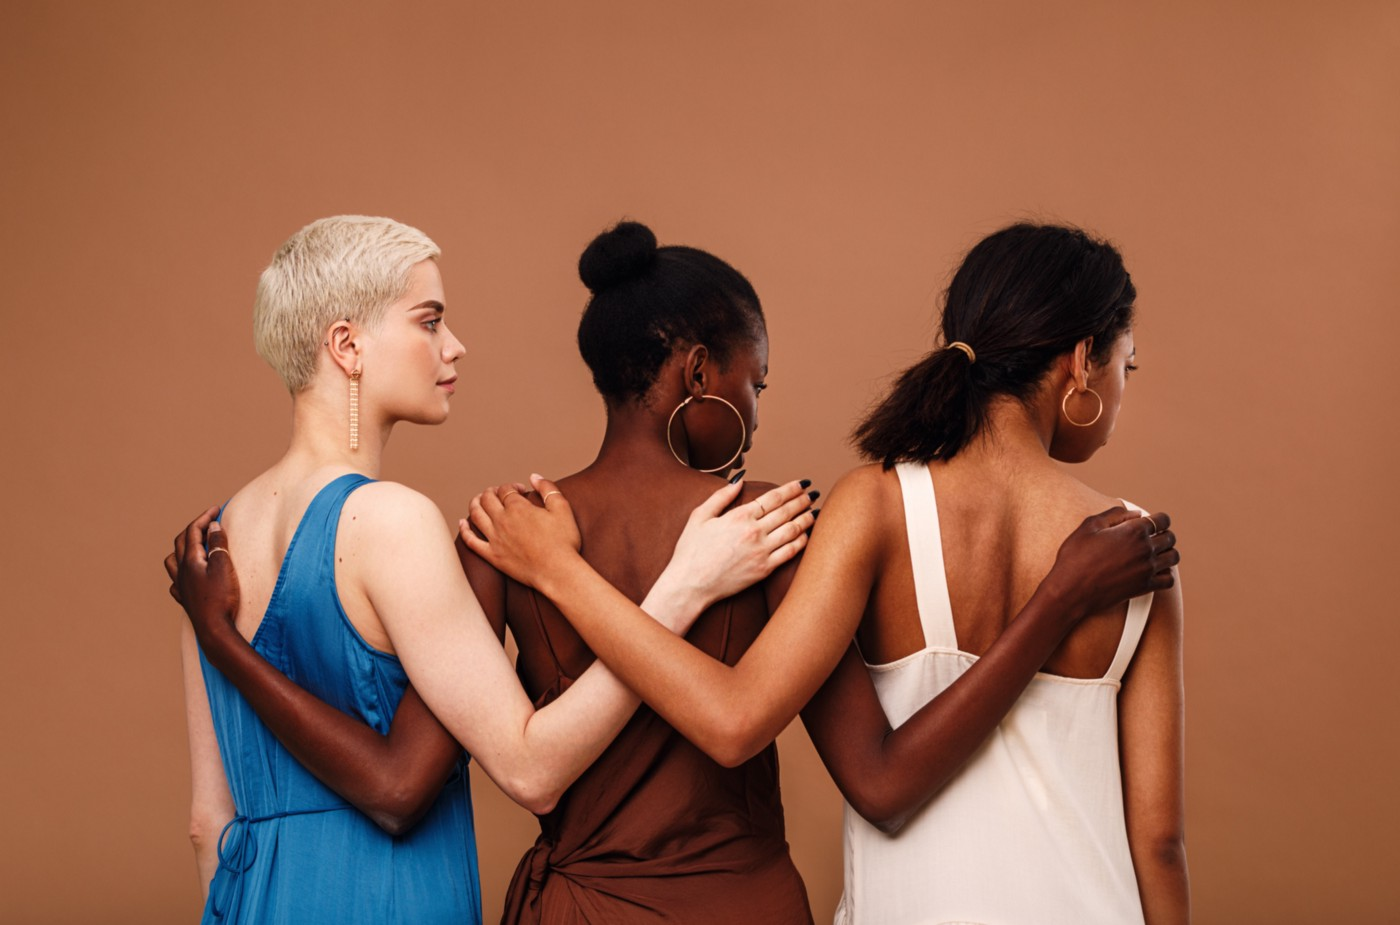 Multi-ethnic women stand with arms on each other's backs, facing away from the camera, against a light chestnut background.